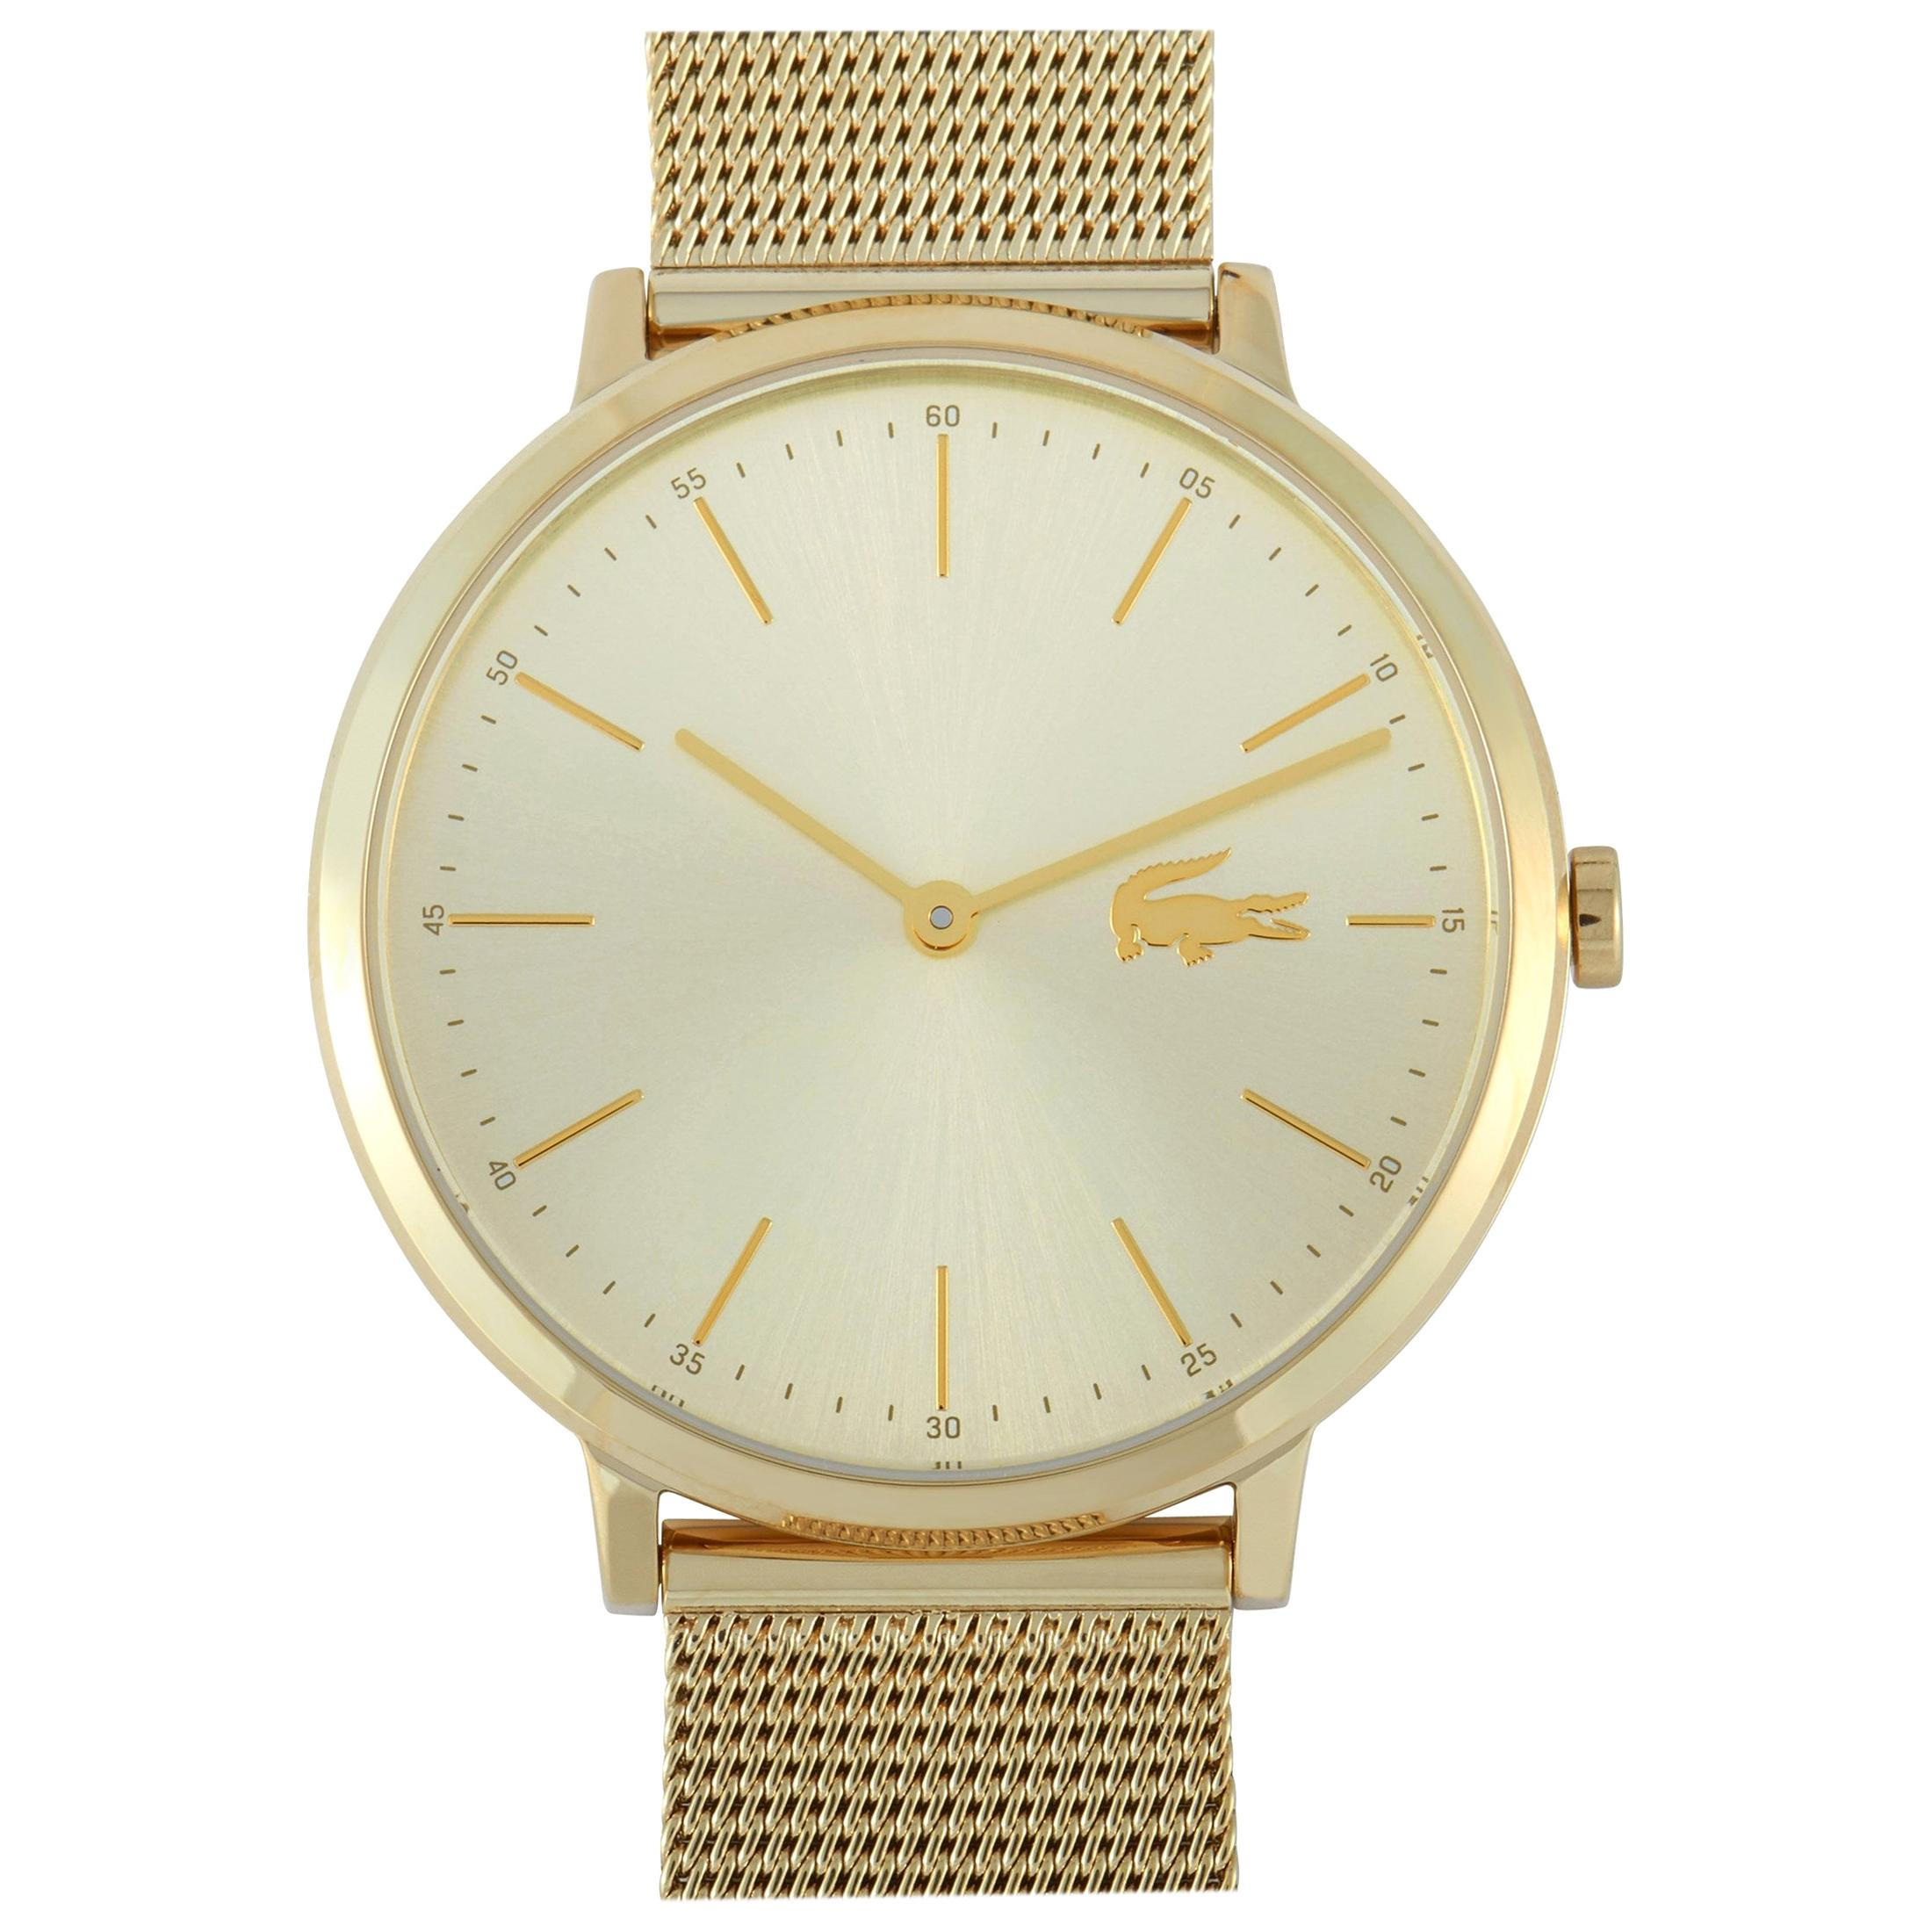 Lacoste Moon Ultra Slim Gold-Toned Stainless Steel Watch 2001000